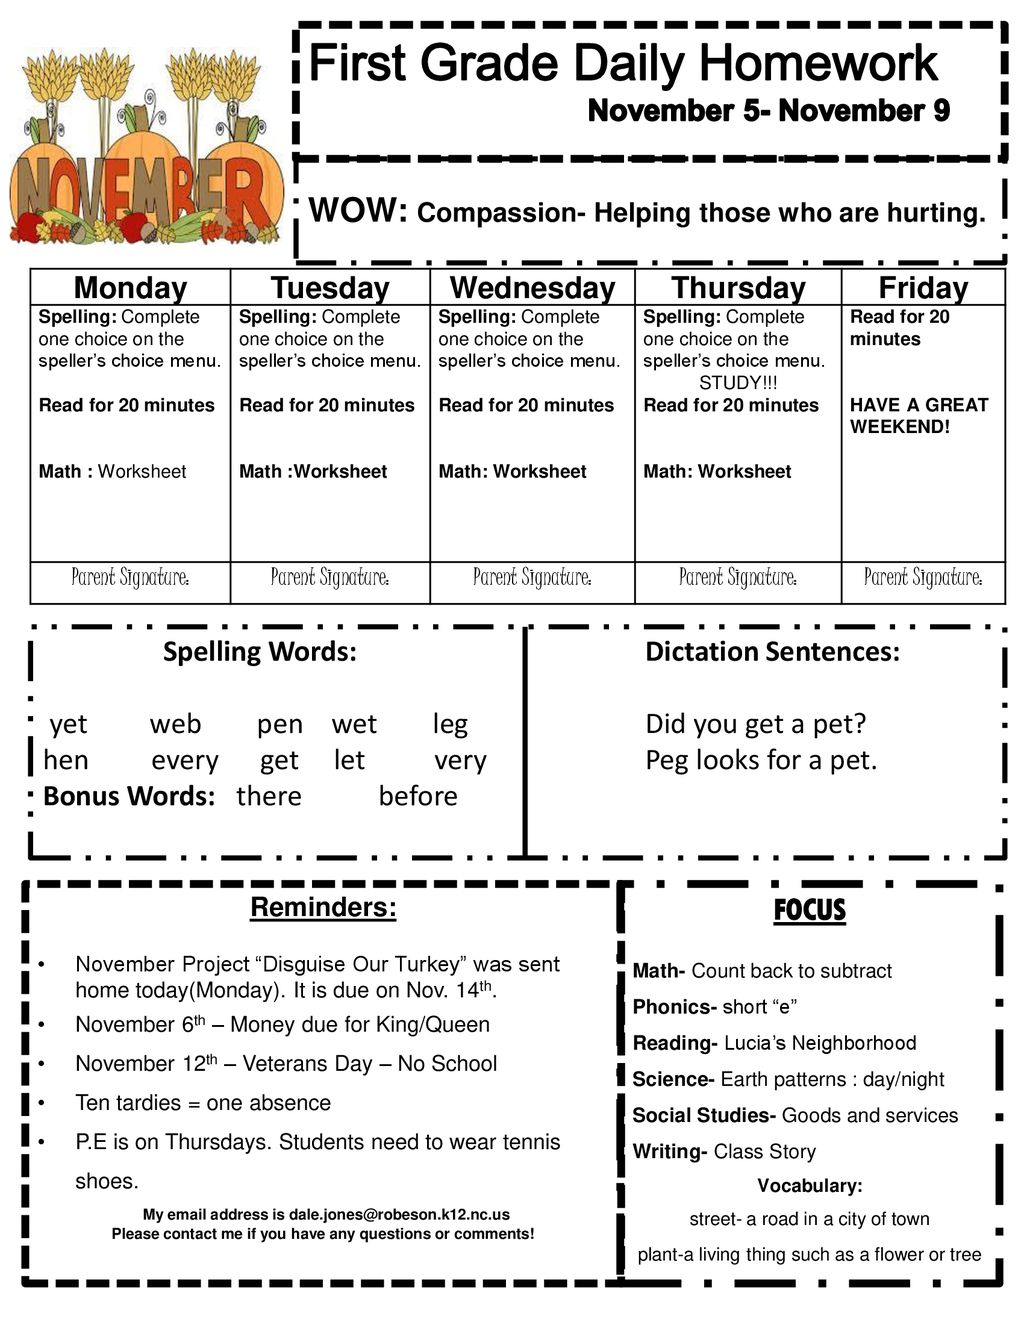 hight resolution of First Grade Daily Homework November 5- November 9 - ppt download